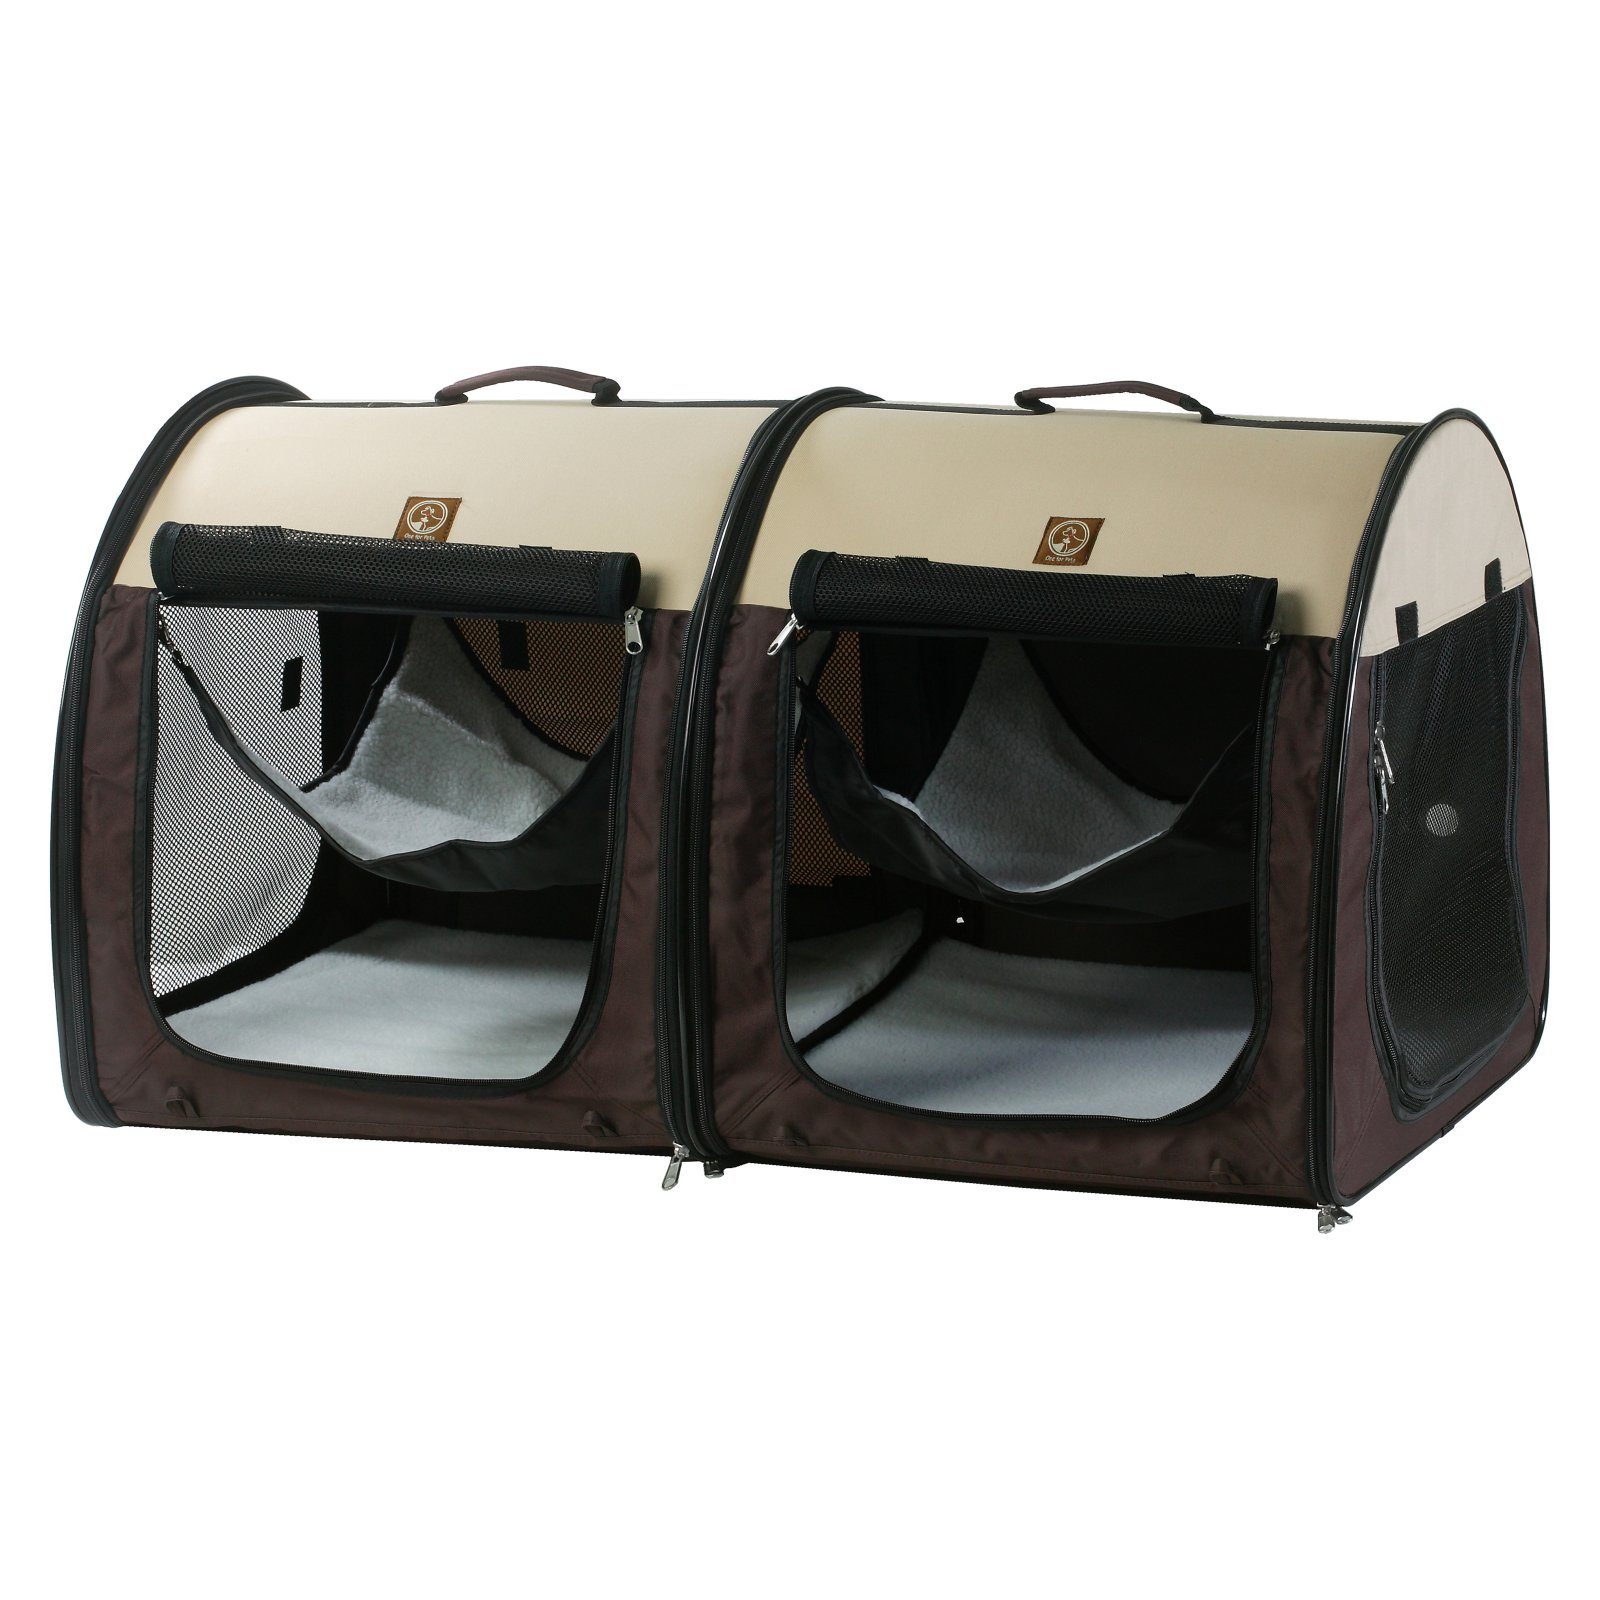 One For Pets Fabric Portable Kennel